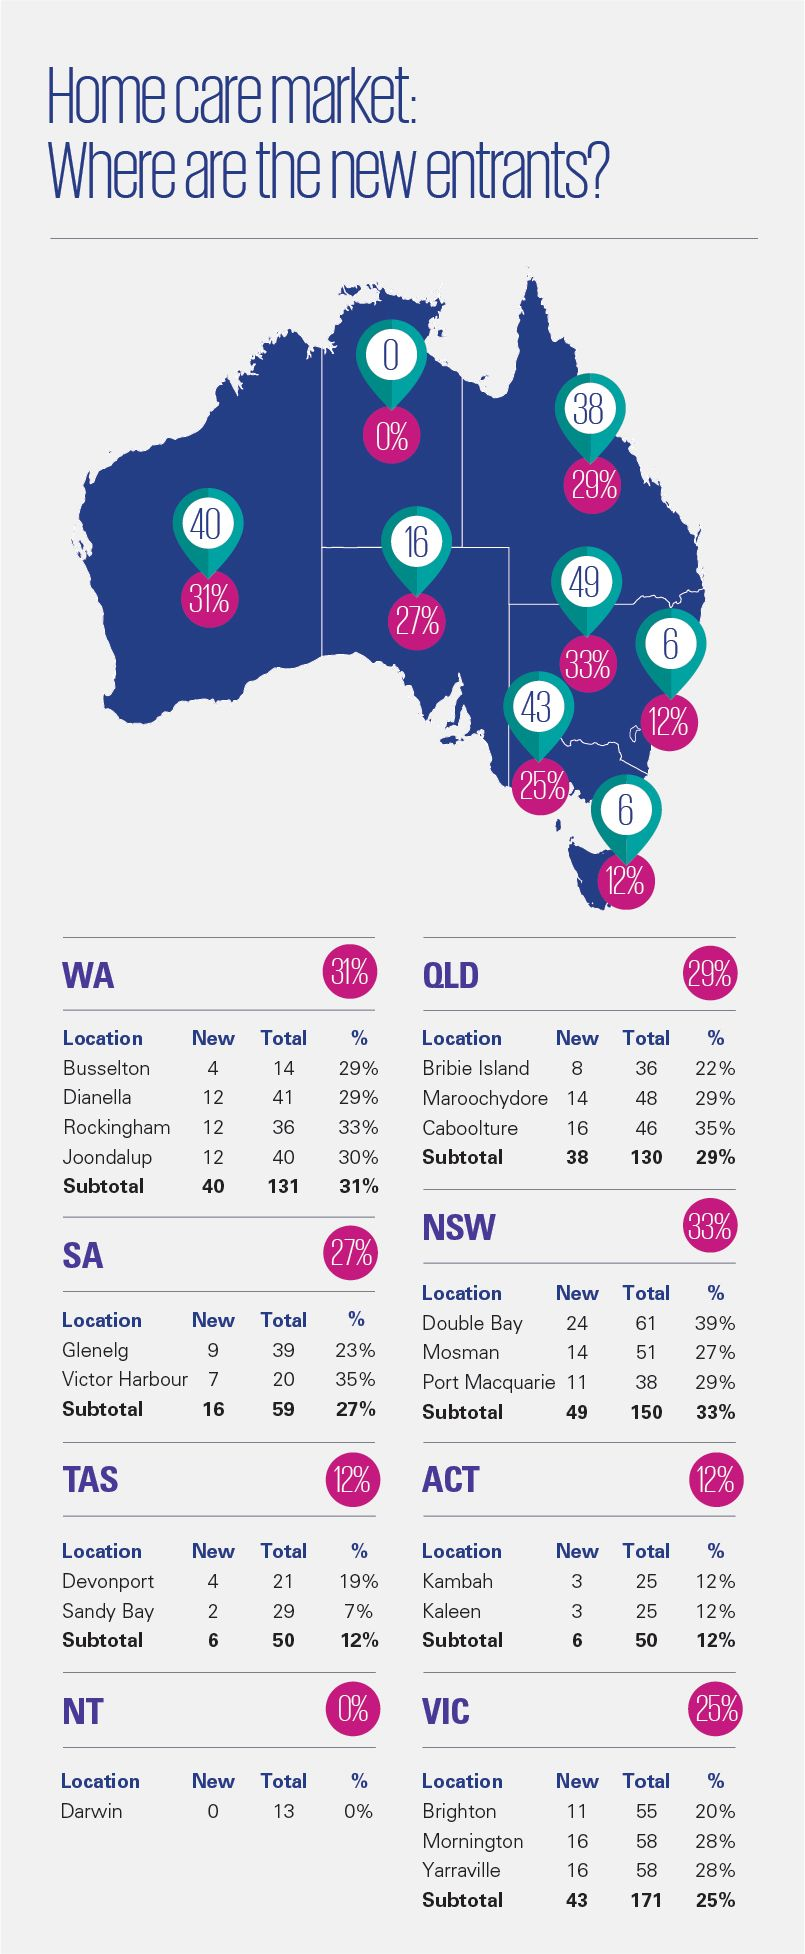 Home care market: Where are the new entrants?